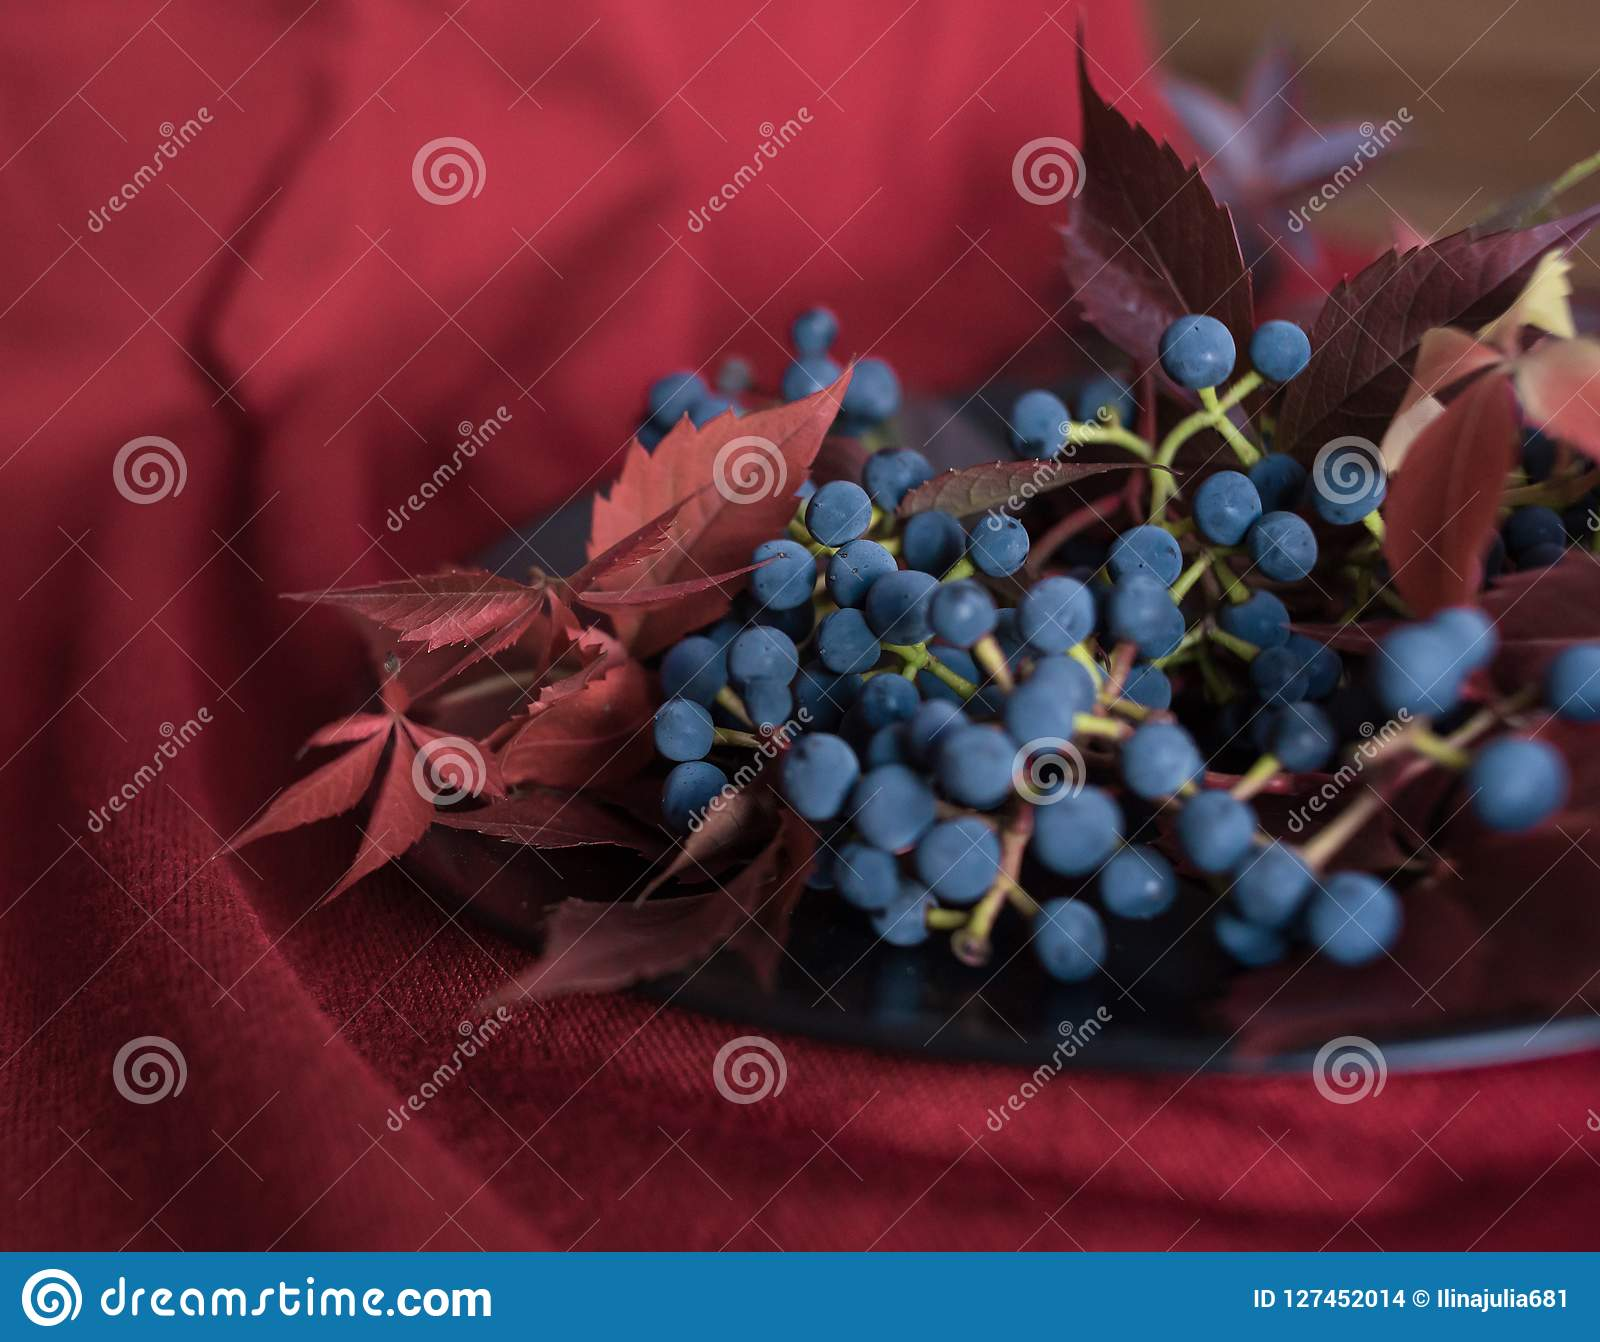 blue berries grapes red leaves close-up macro texture